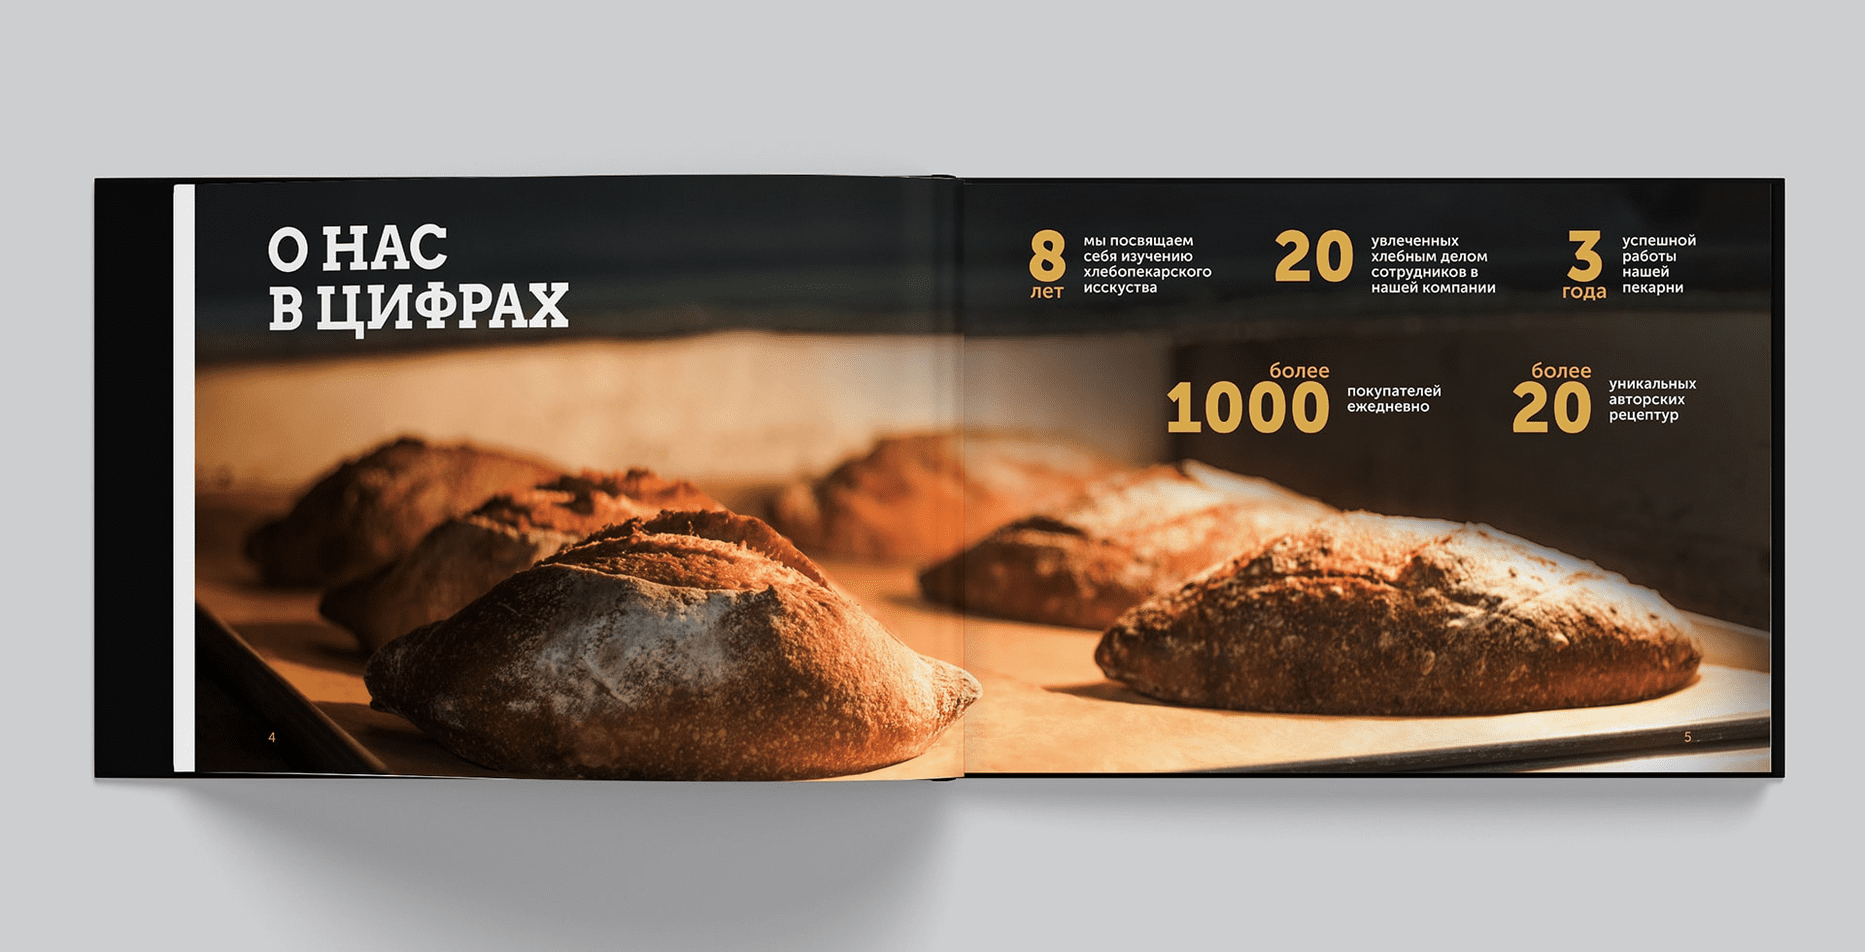 Case: logo design, branding and marketing kit for the bread business — Rubarb - Image - 16